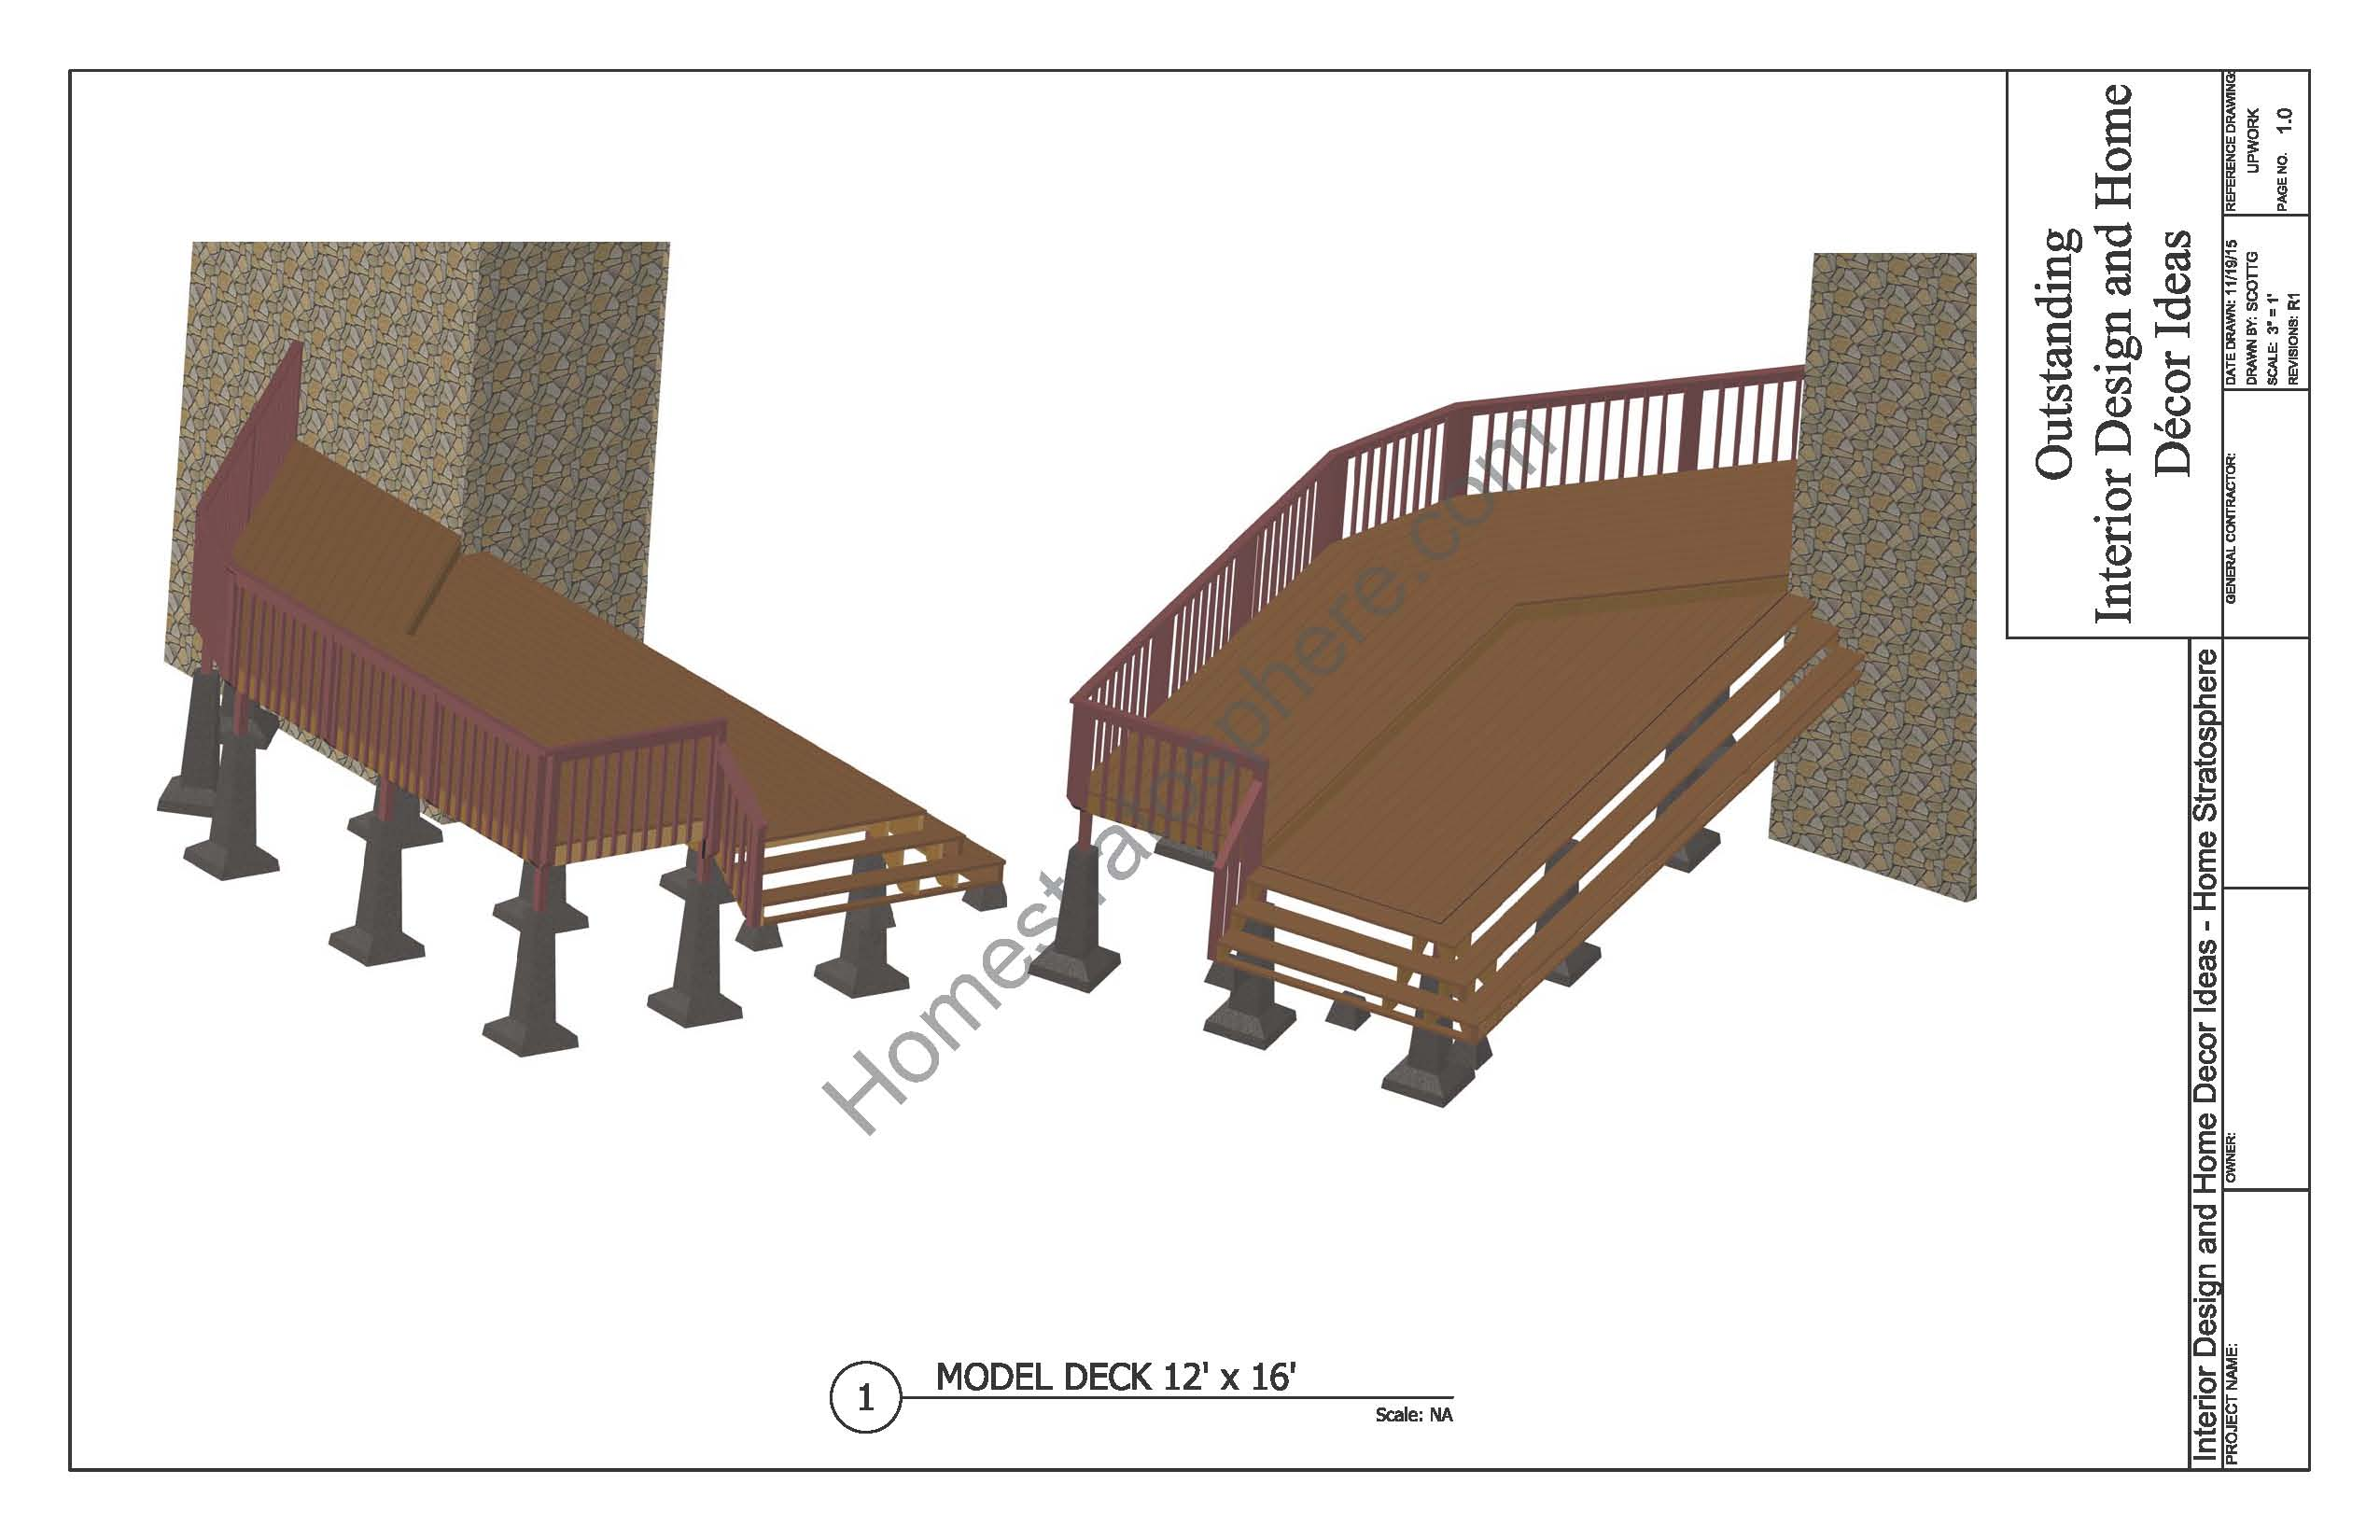 2 level deck plan blueprint free pdf download for Free online deck design